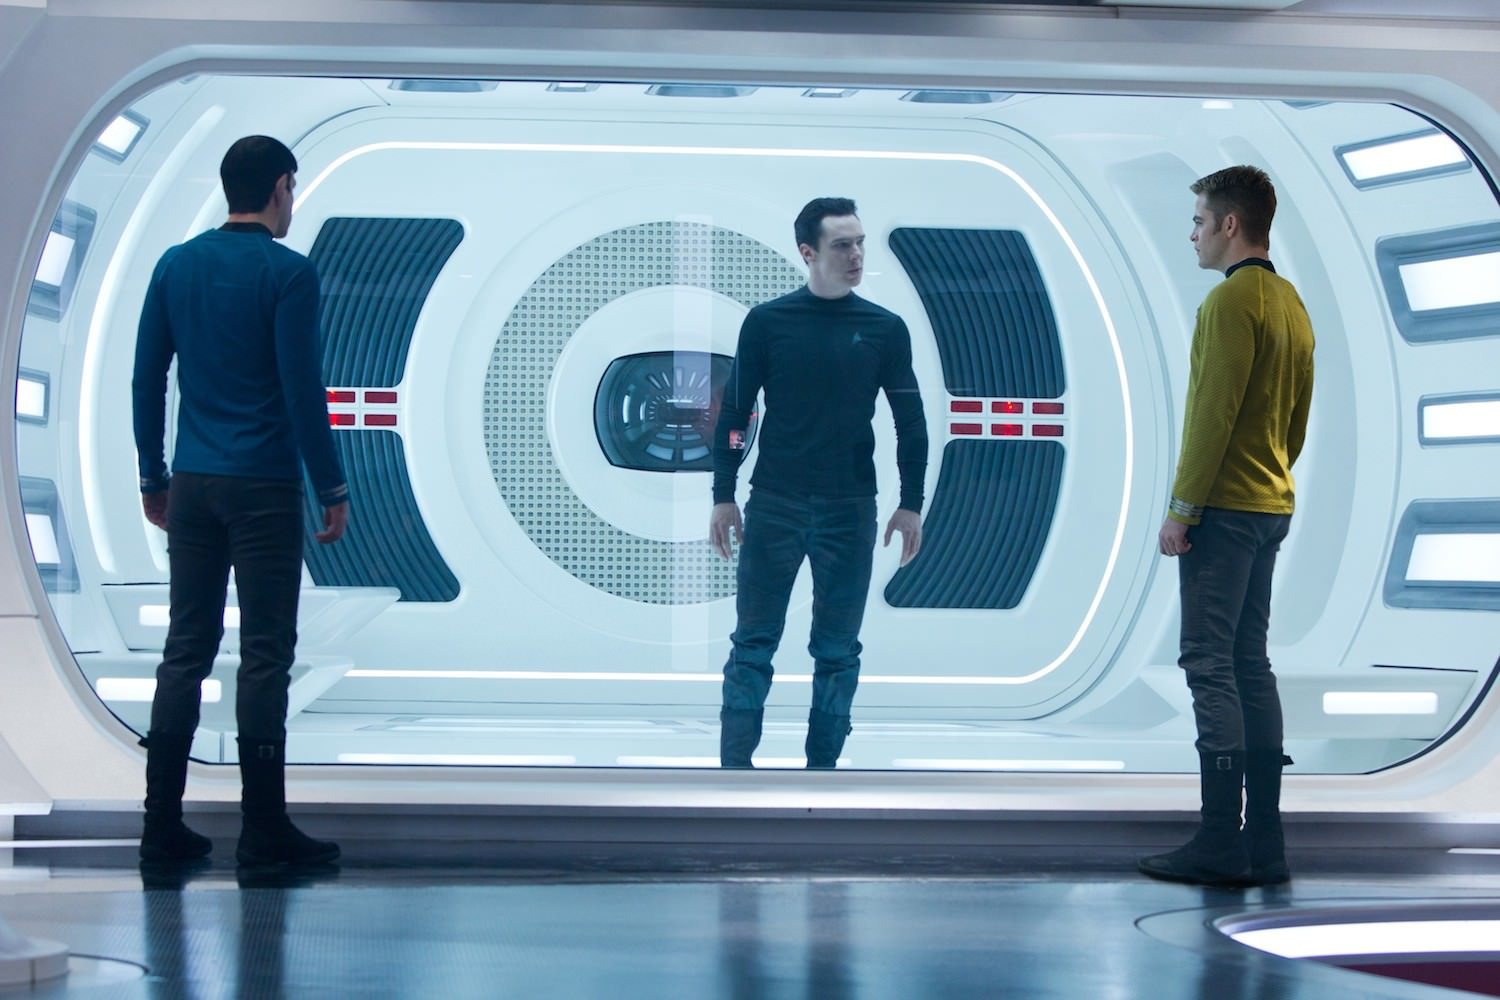 Star trek into darkness abrams benedict cumberbatch